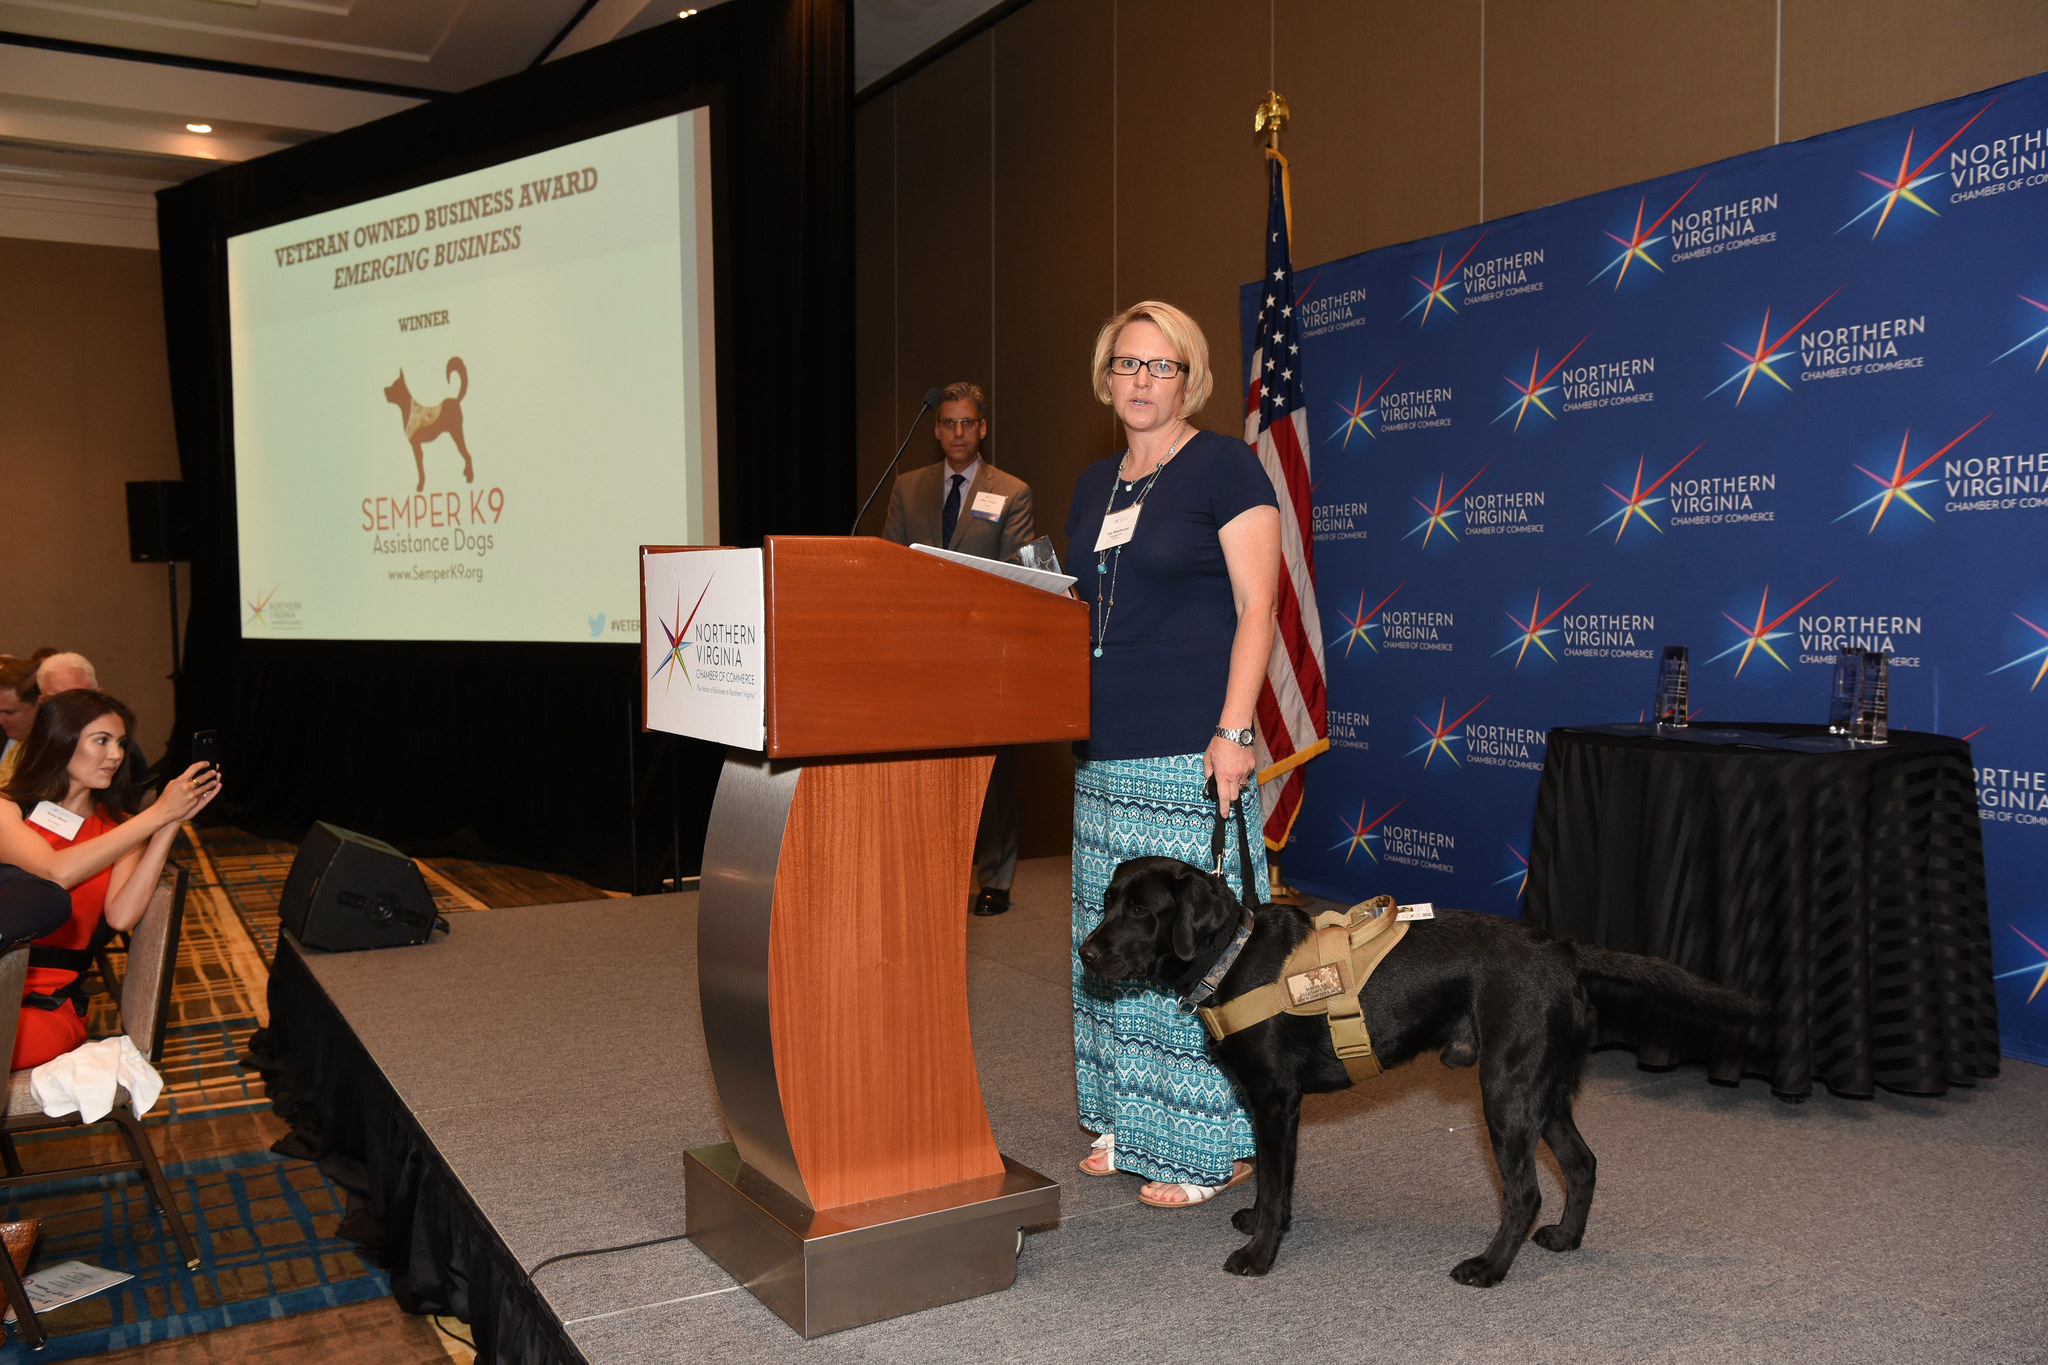 Semper K9 Wins Northern Virginia Chamber of Commerce Distinguished